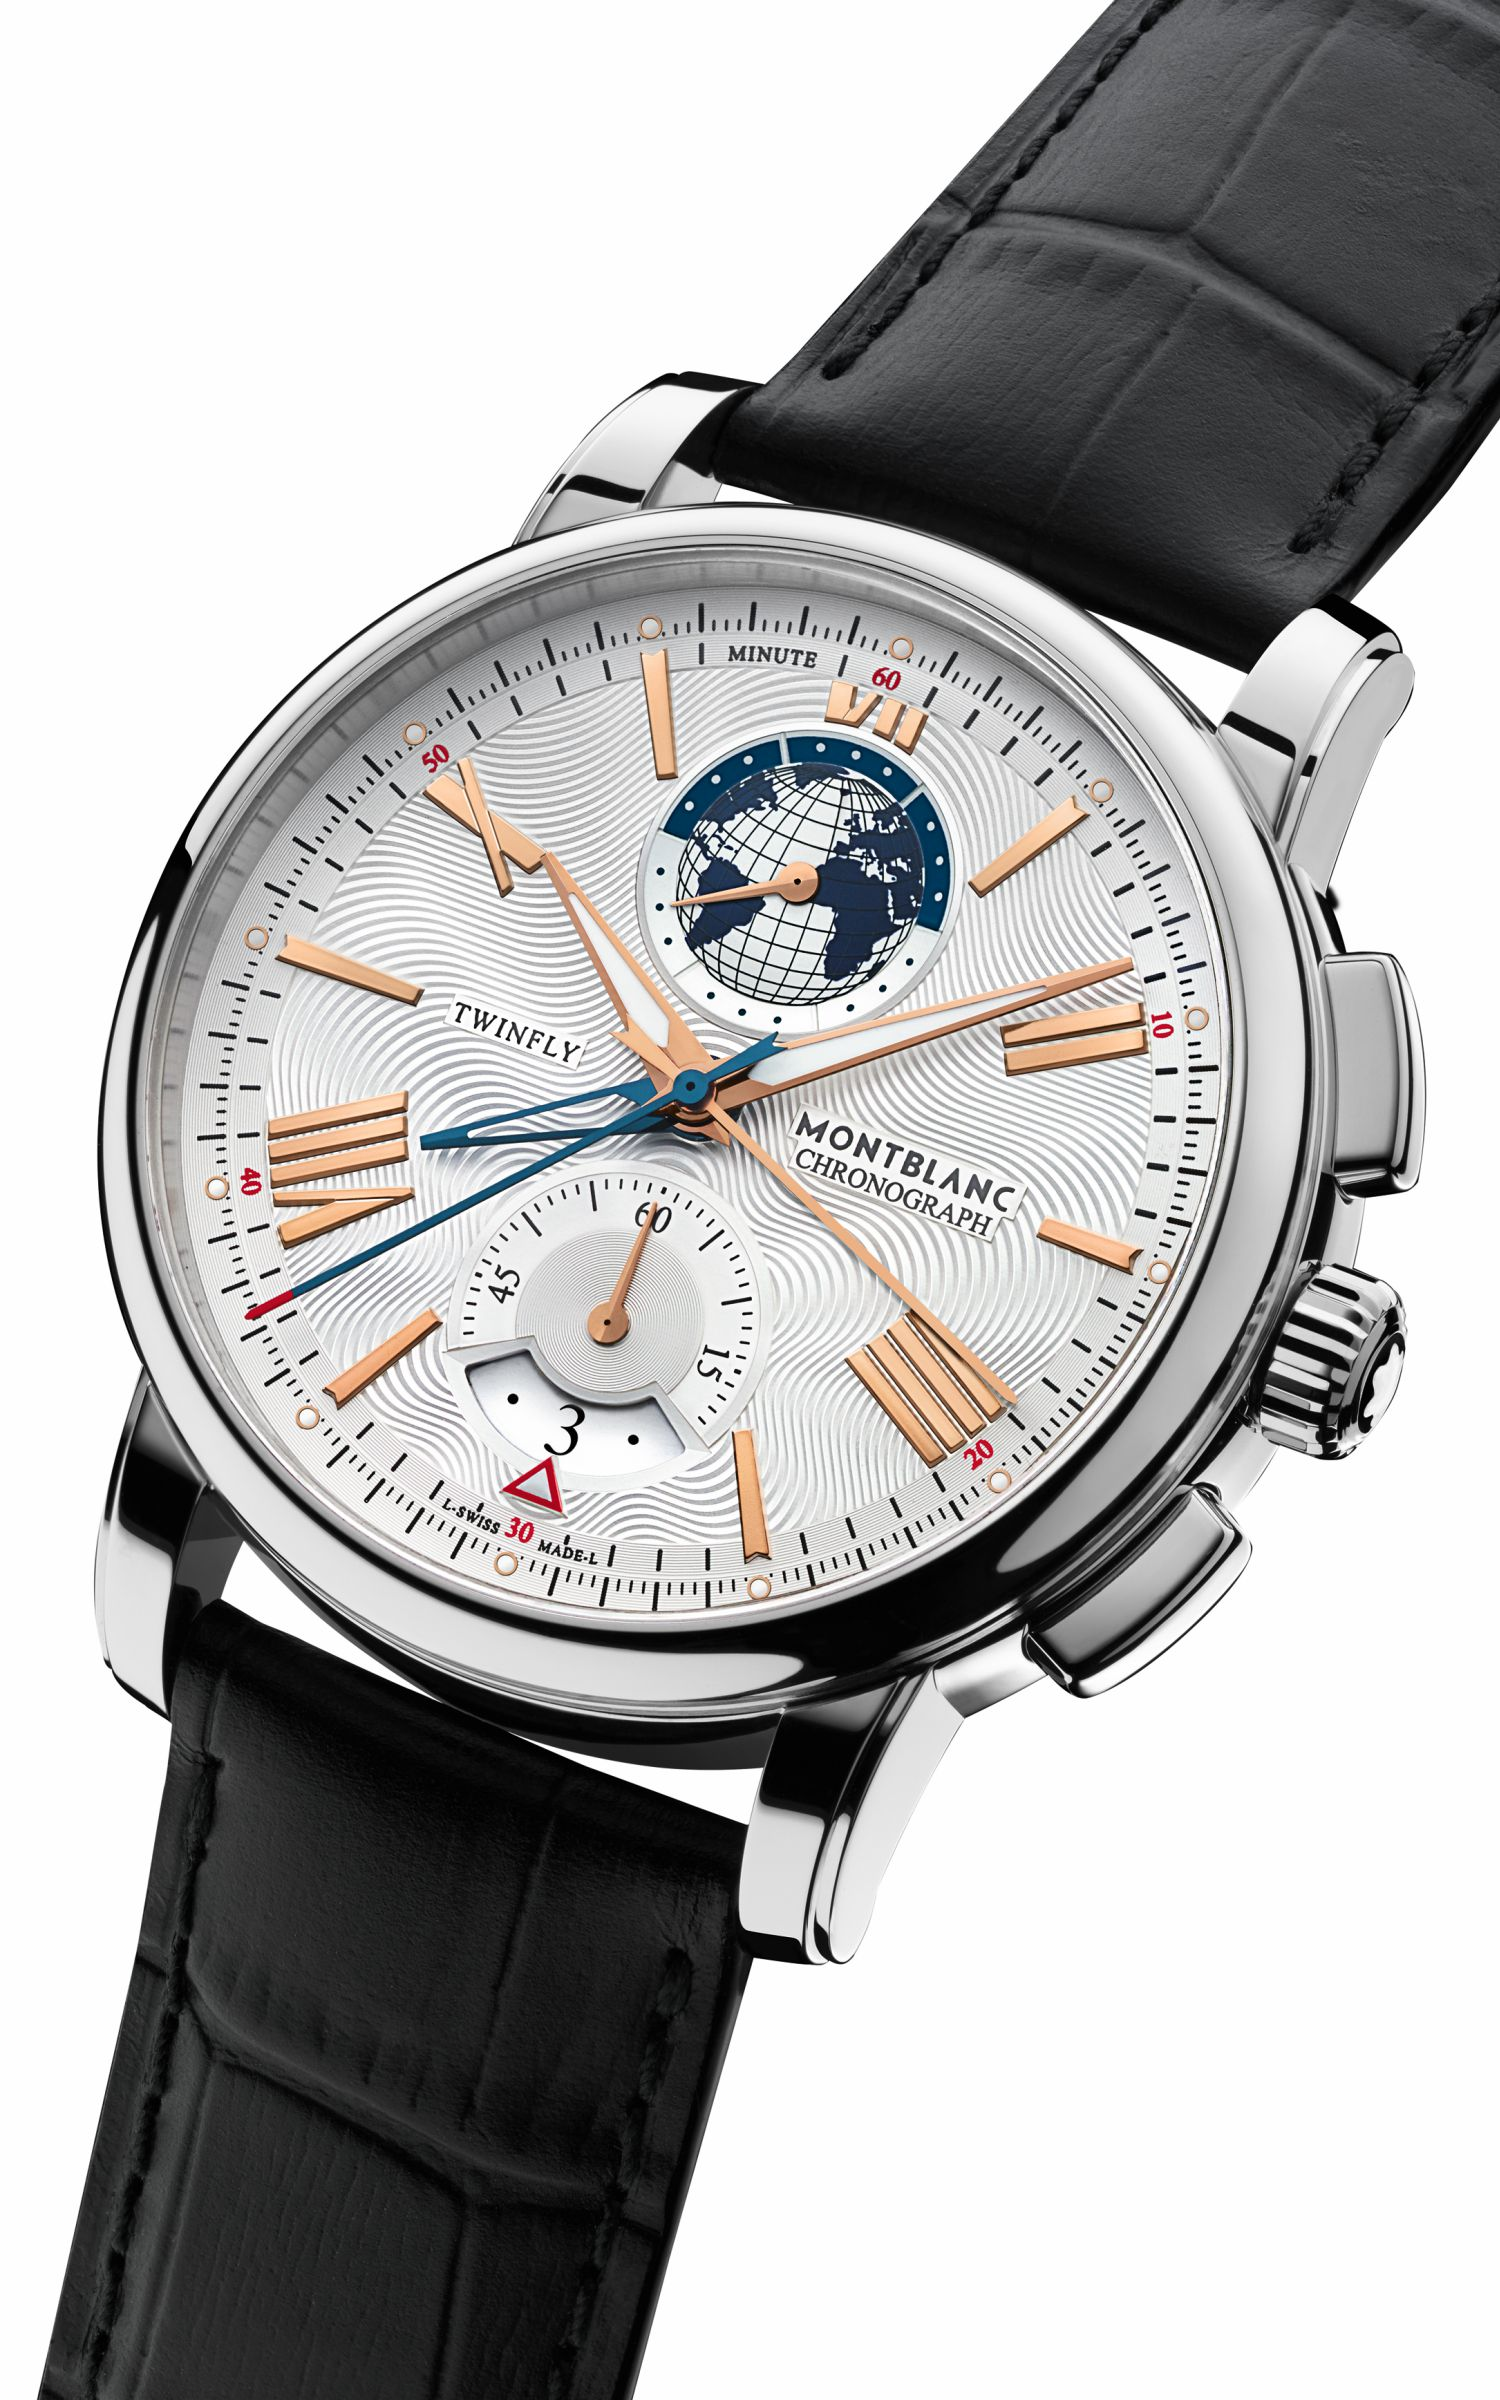 Montblanc-4810-TwinFly-Chronograph-110-Years-Edition-2.jpg